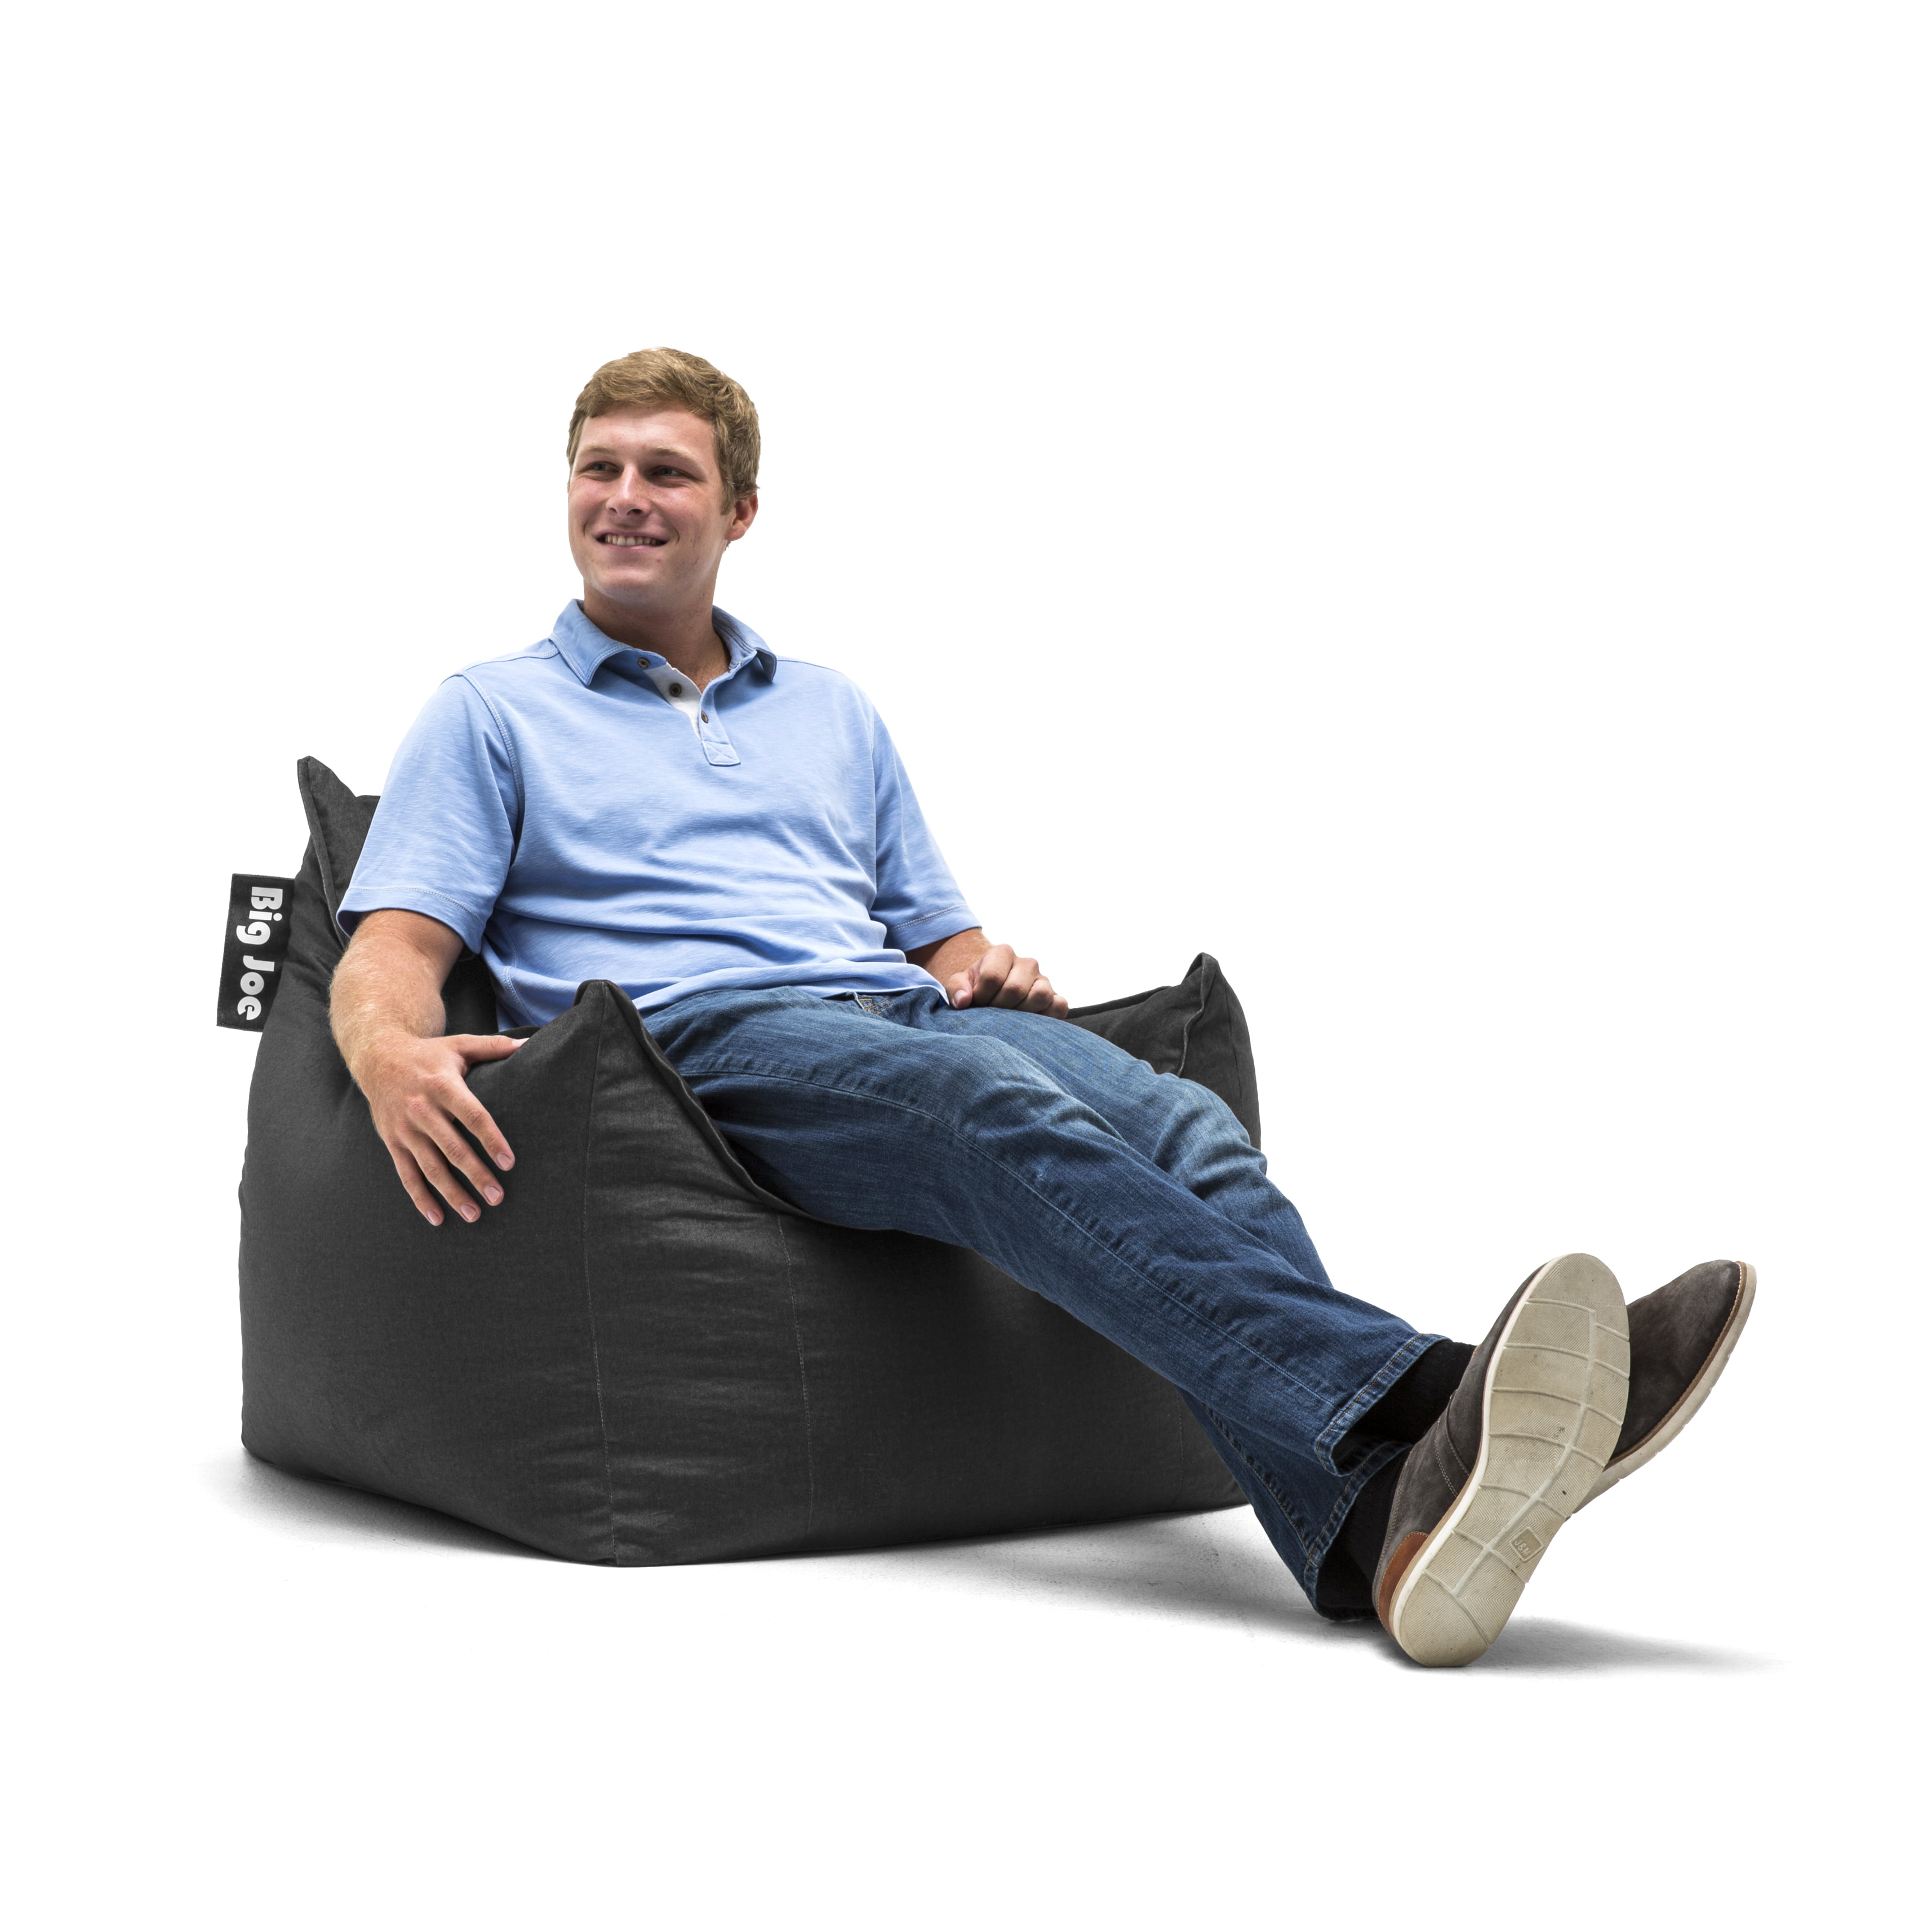 Big Joe Mitten Bean Bag Chair Available In Multiple